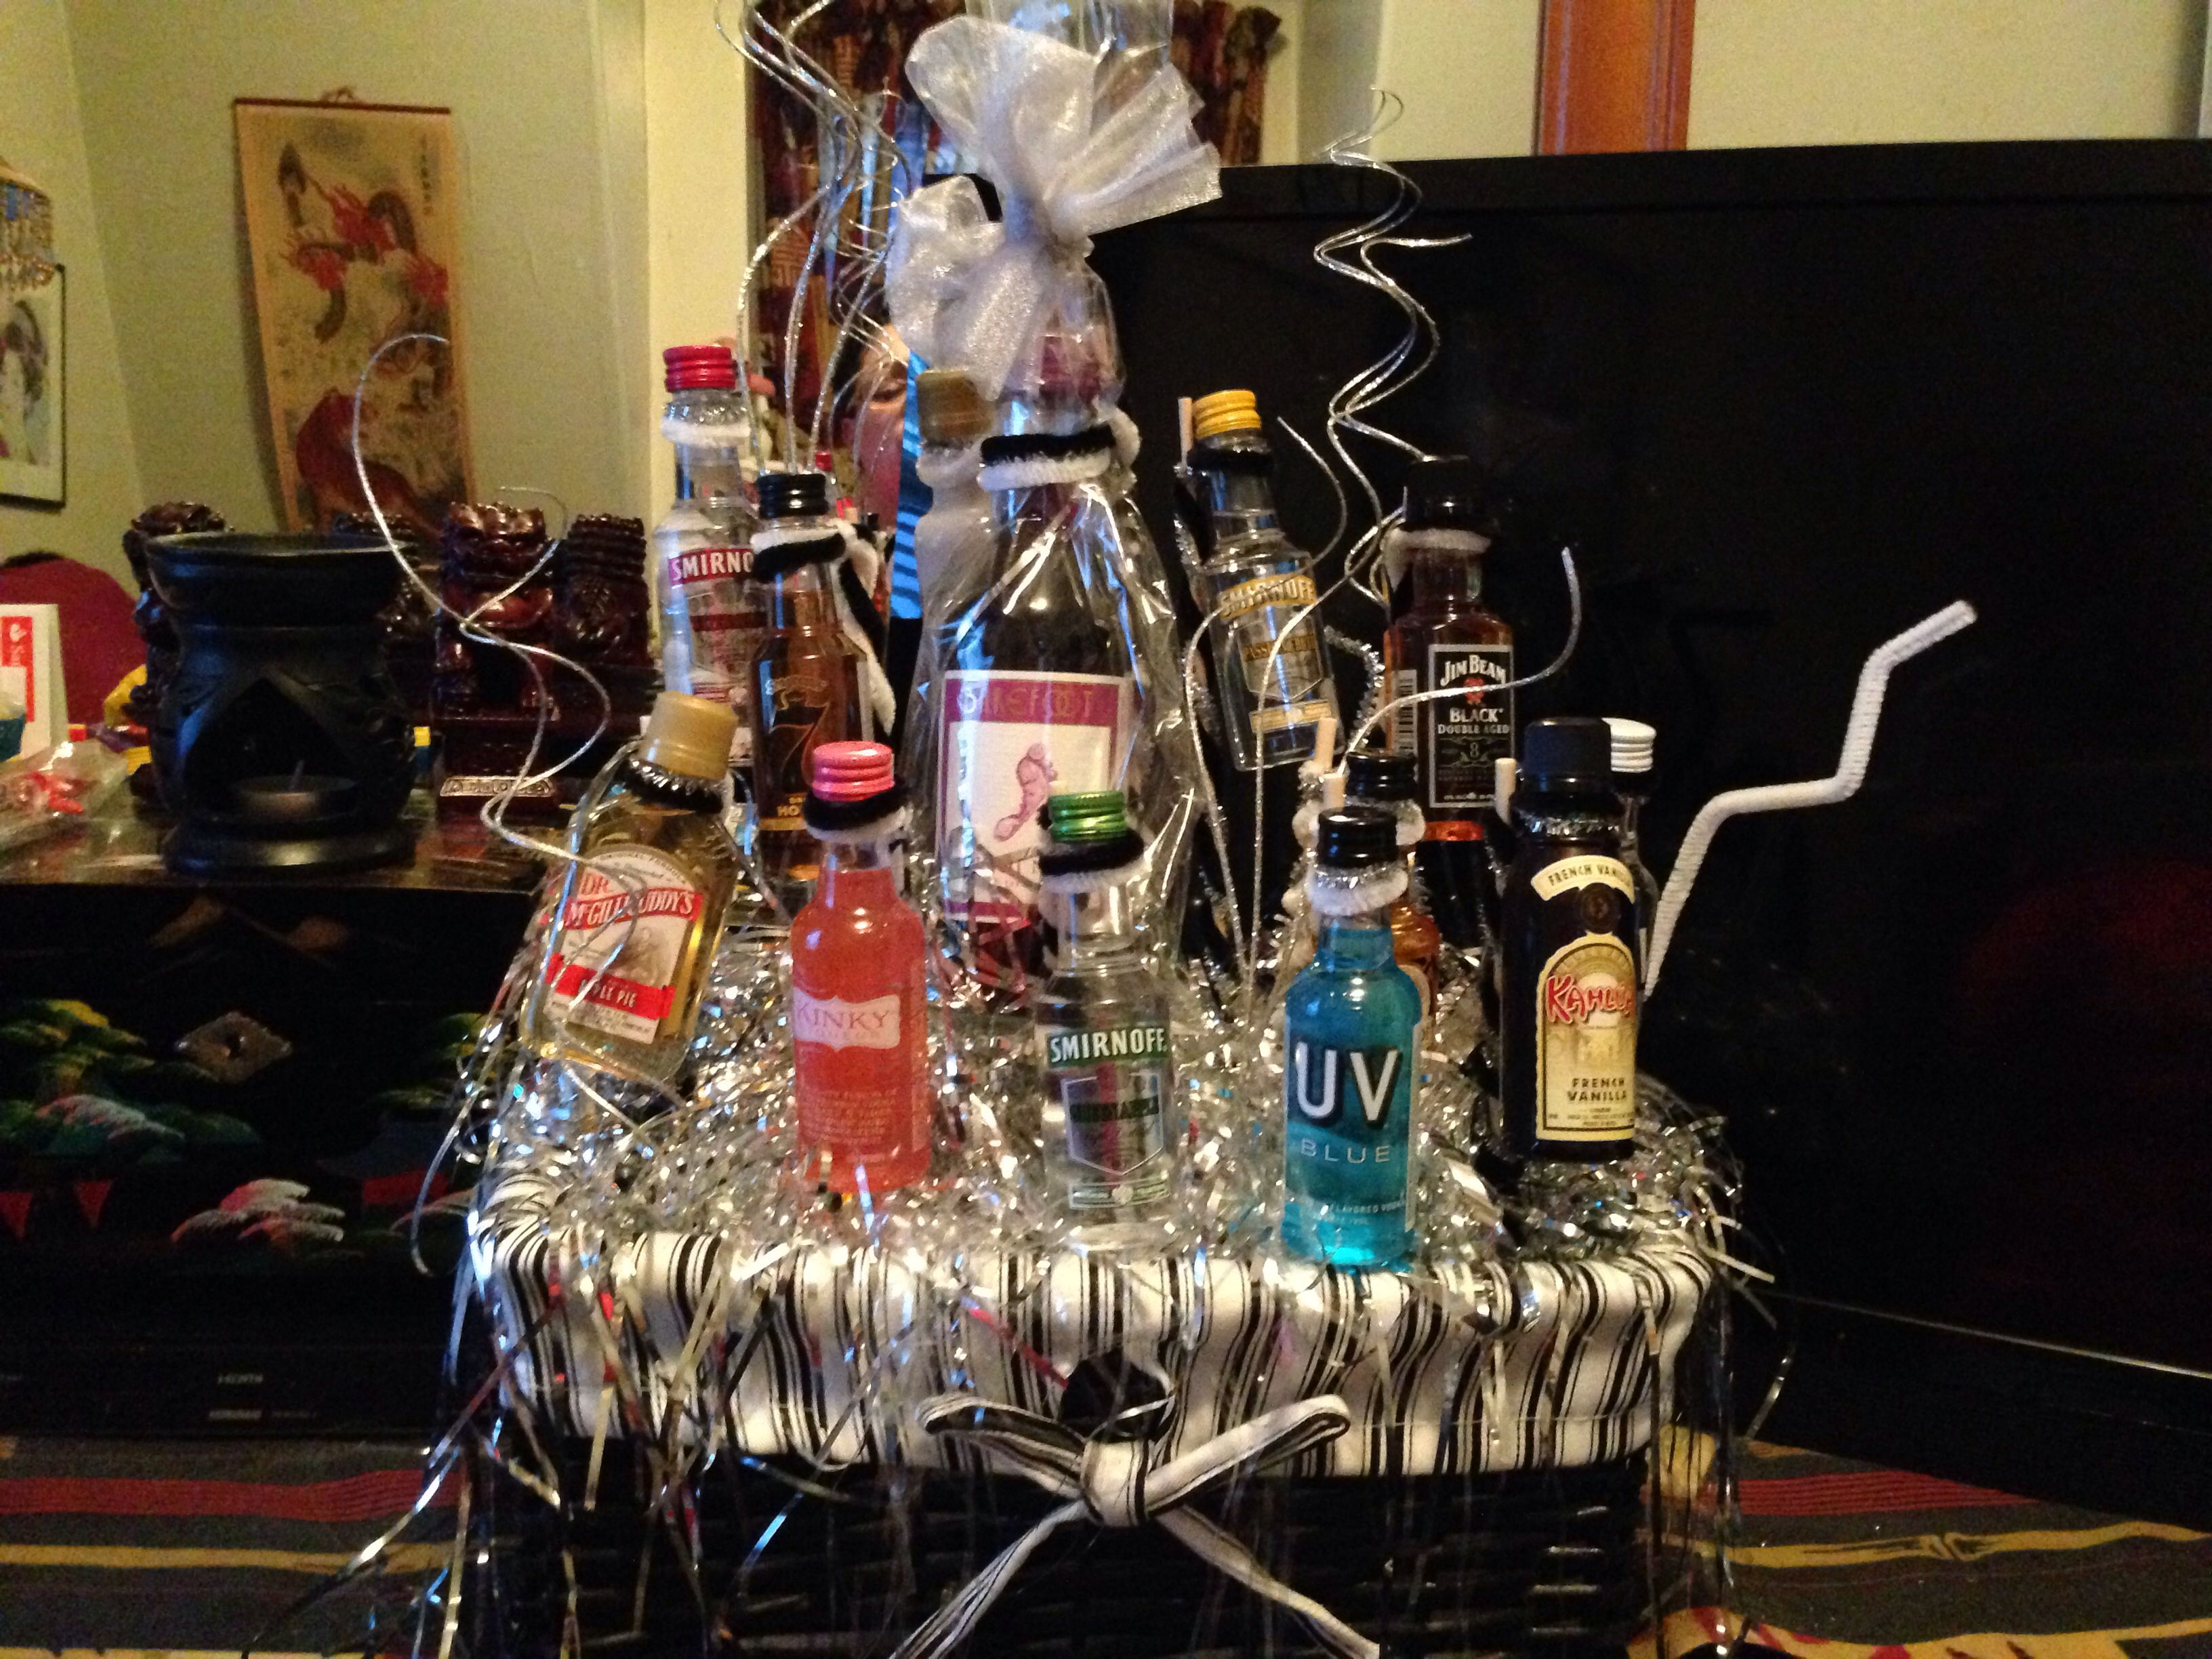 fundraiser basket of cheer